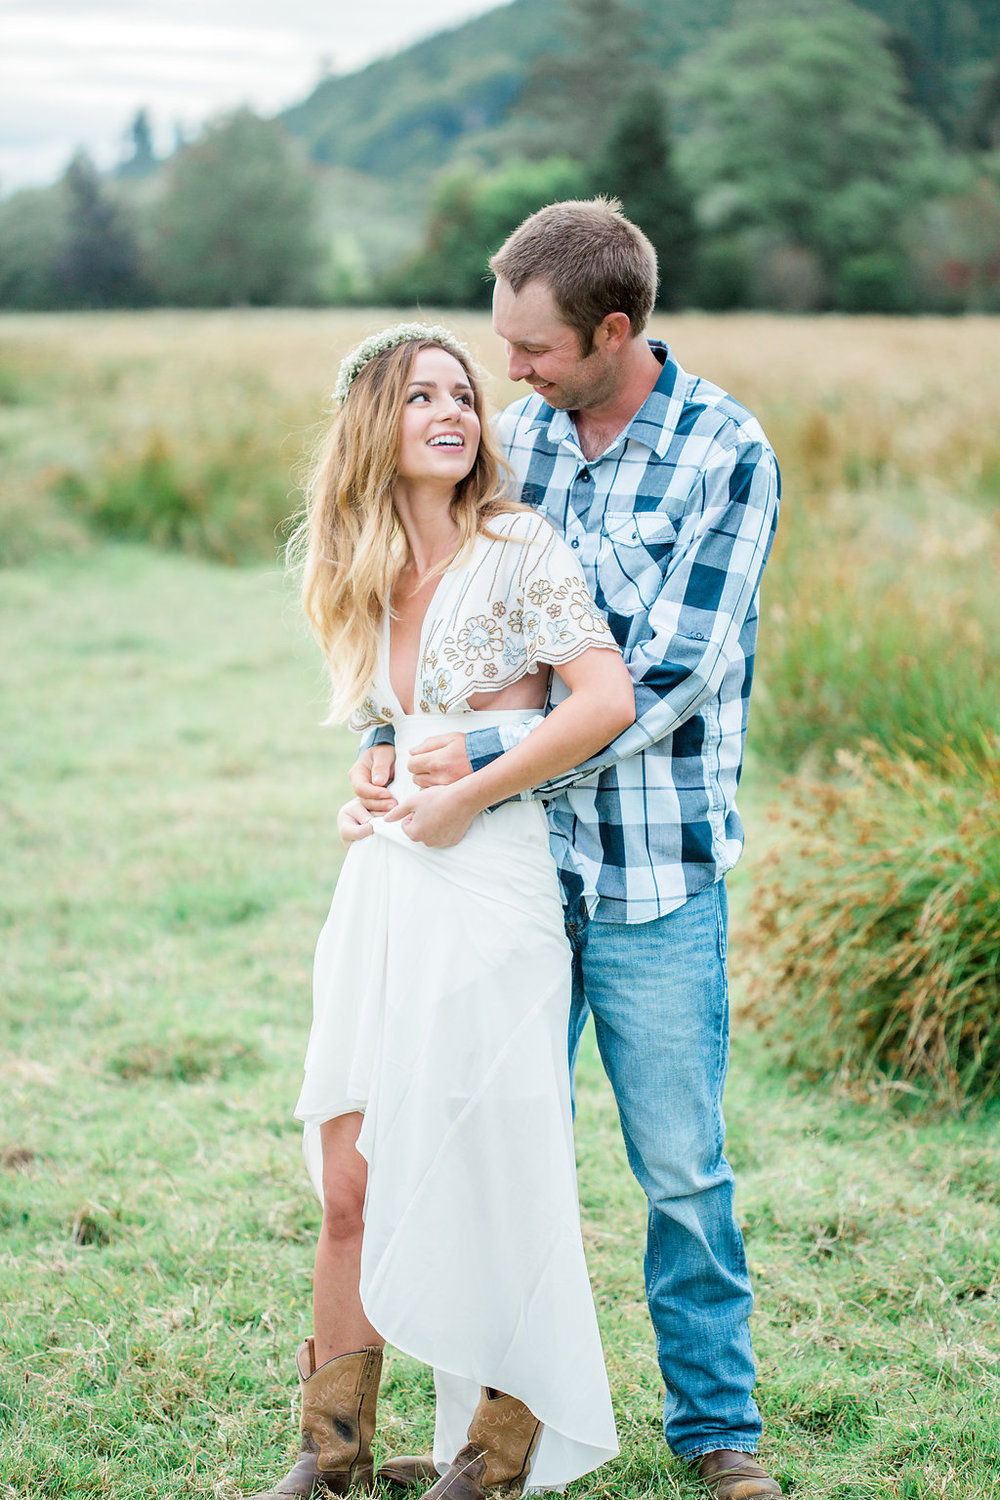 Beautiful outdoor engagement session | What to wear | Photo Inspiration | Engagement session | Portrait | White | Detail Shots | Mastin Labs | Engaged | Fuji 400 | Beautiful Couple | Couple in Love | Beautiful posing | Hair Piece for Photo Session | Engaged to be Married | Dancing in a Field | Etsy Headband